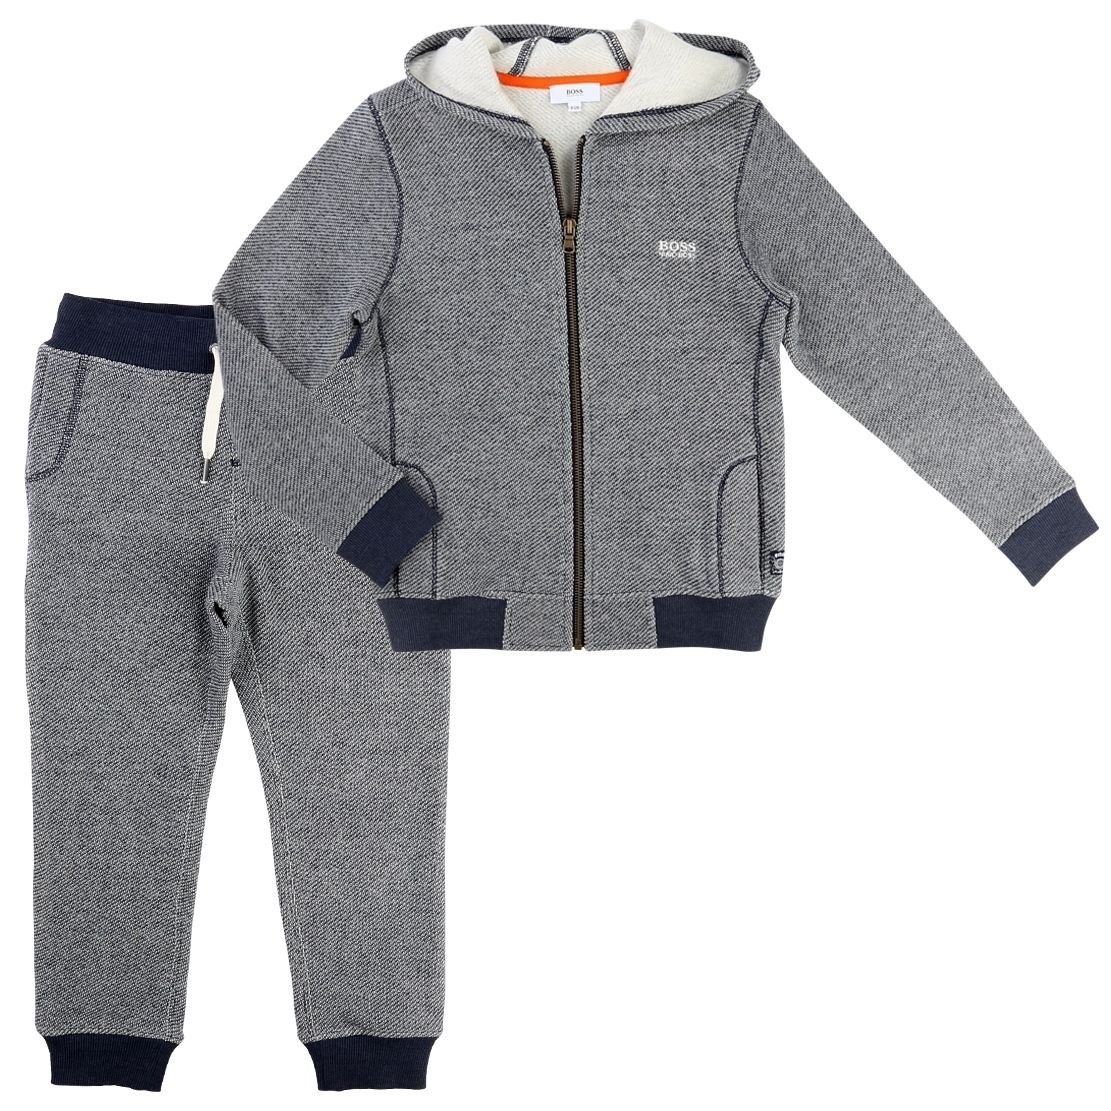 Boss Jogging Set J25A11-J24415 by BOSS Kids